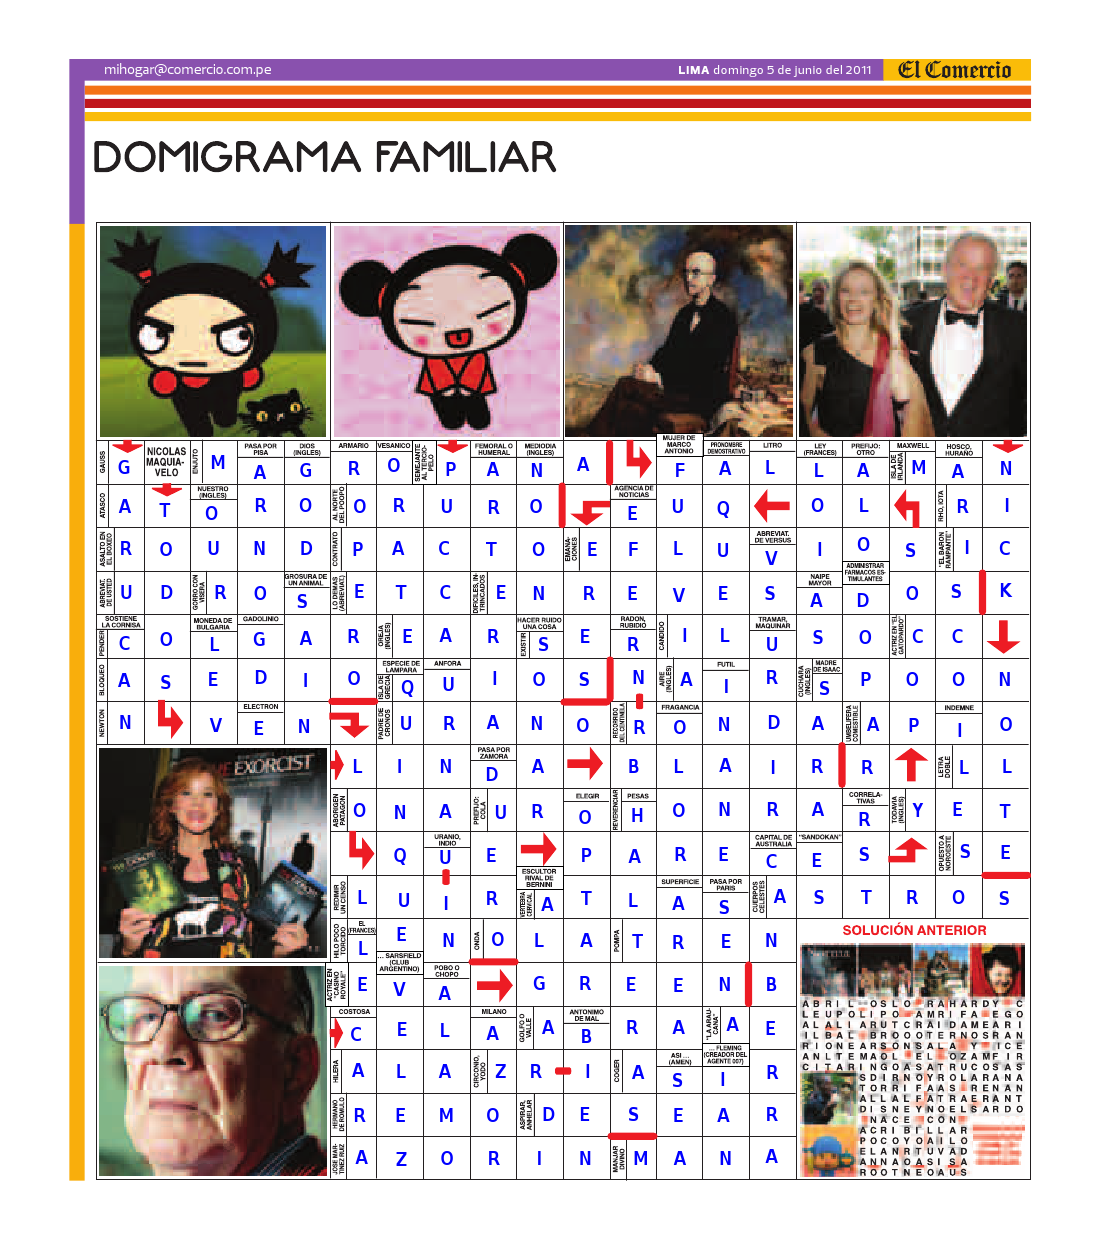 Solución del Dominigrama Familiar del domingo 5 de junio del 2011